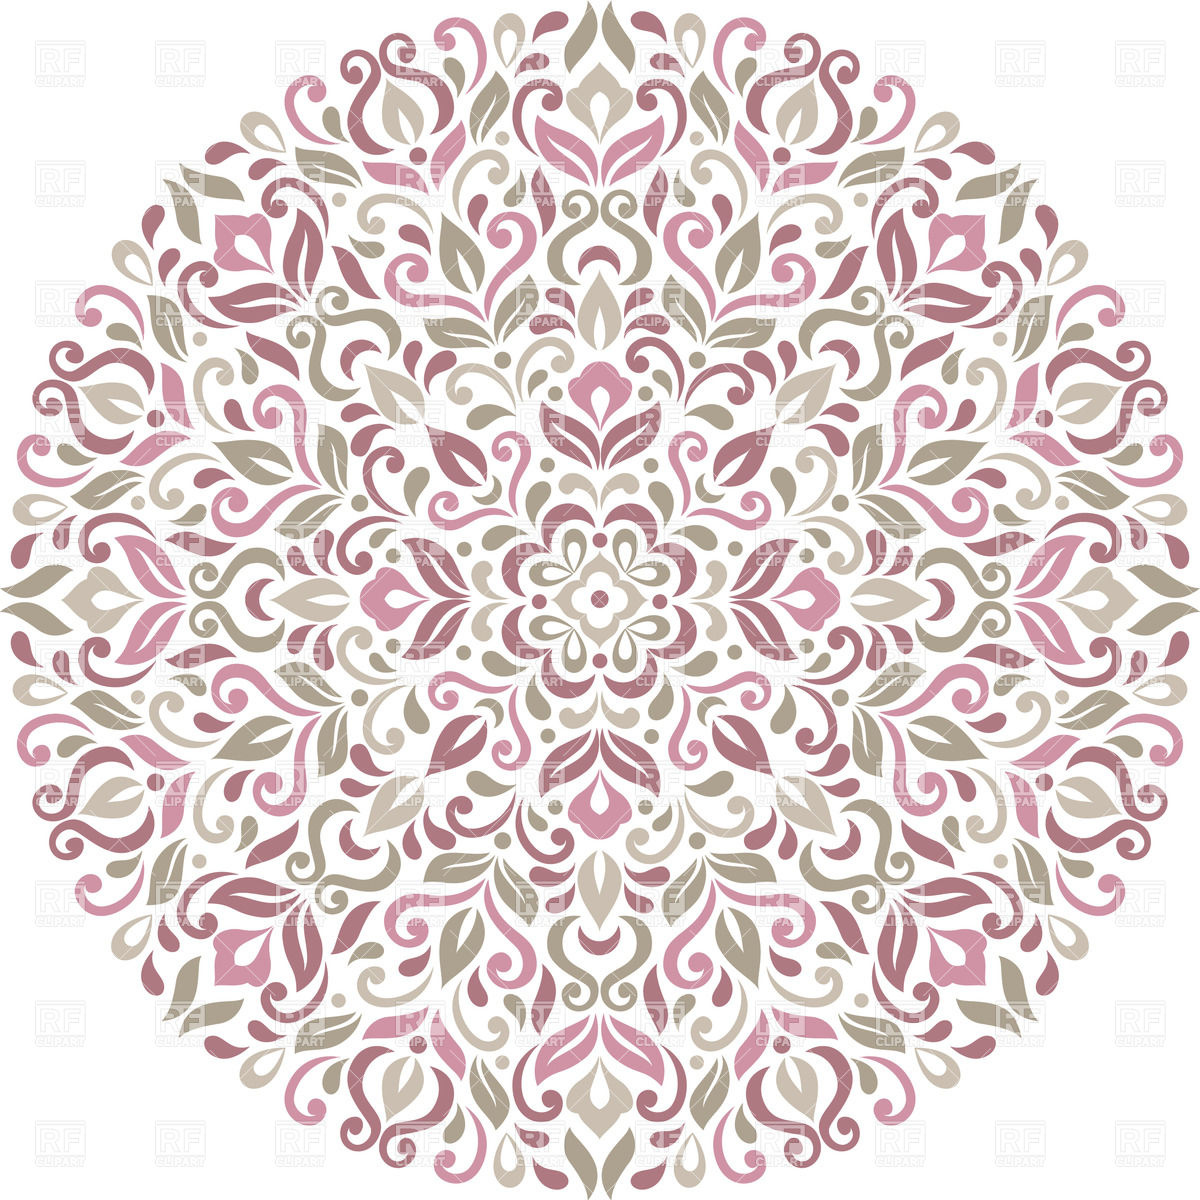 Round floral ornament made of stylized flowers and leafs.